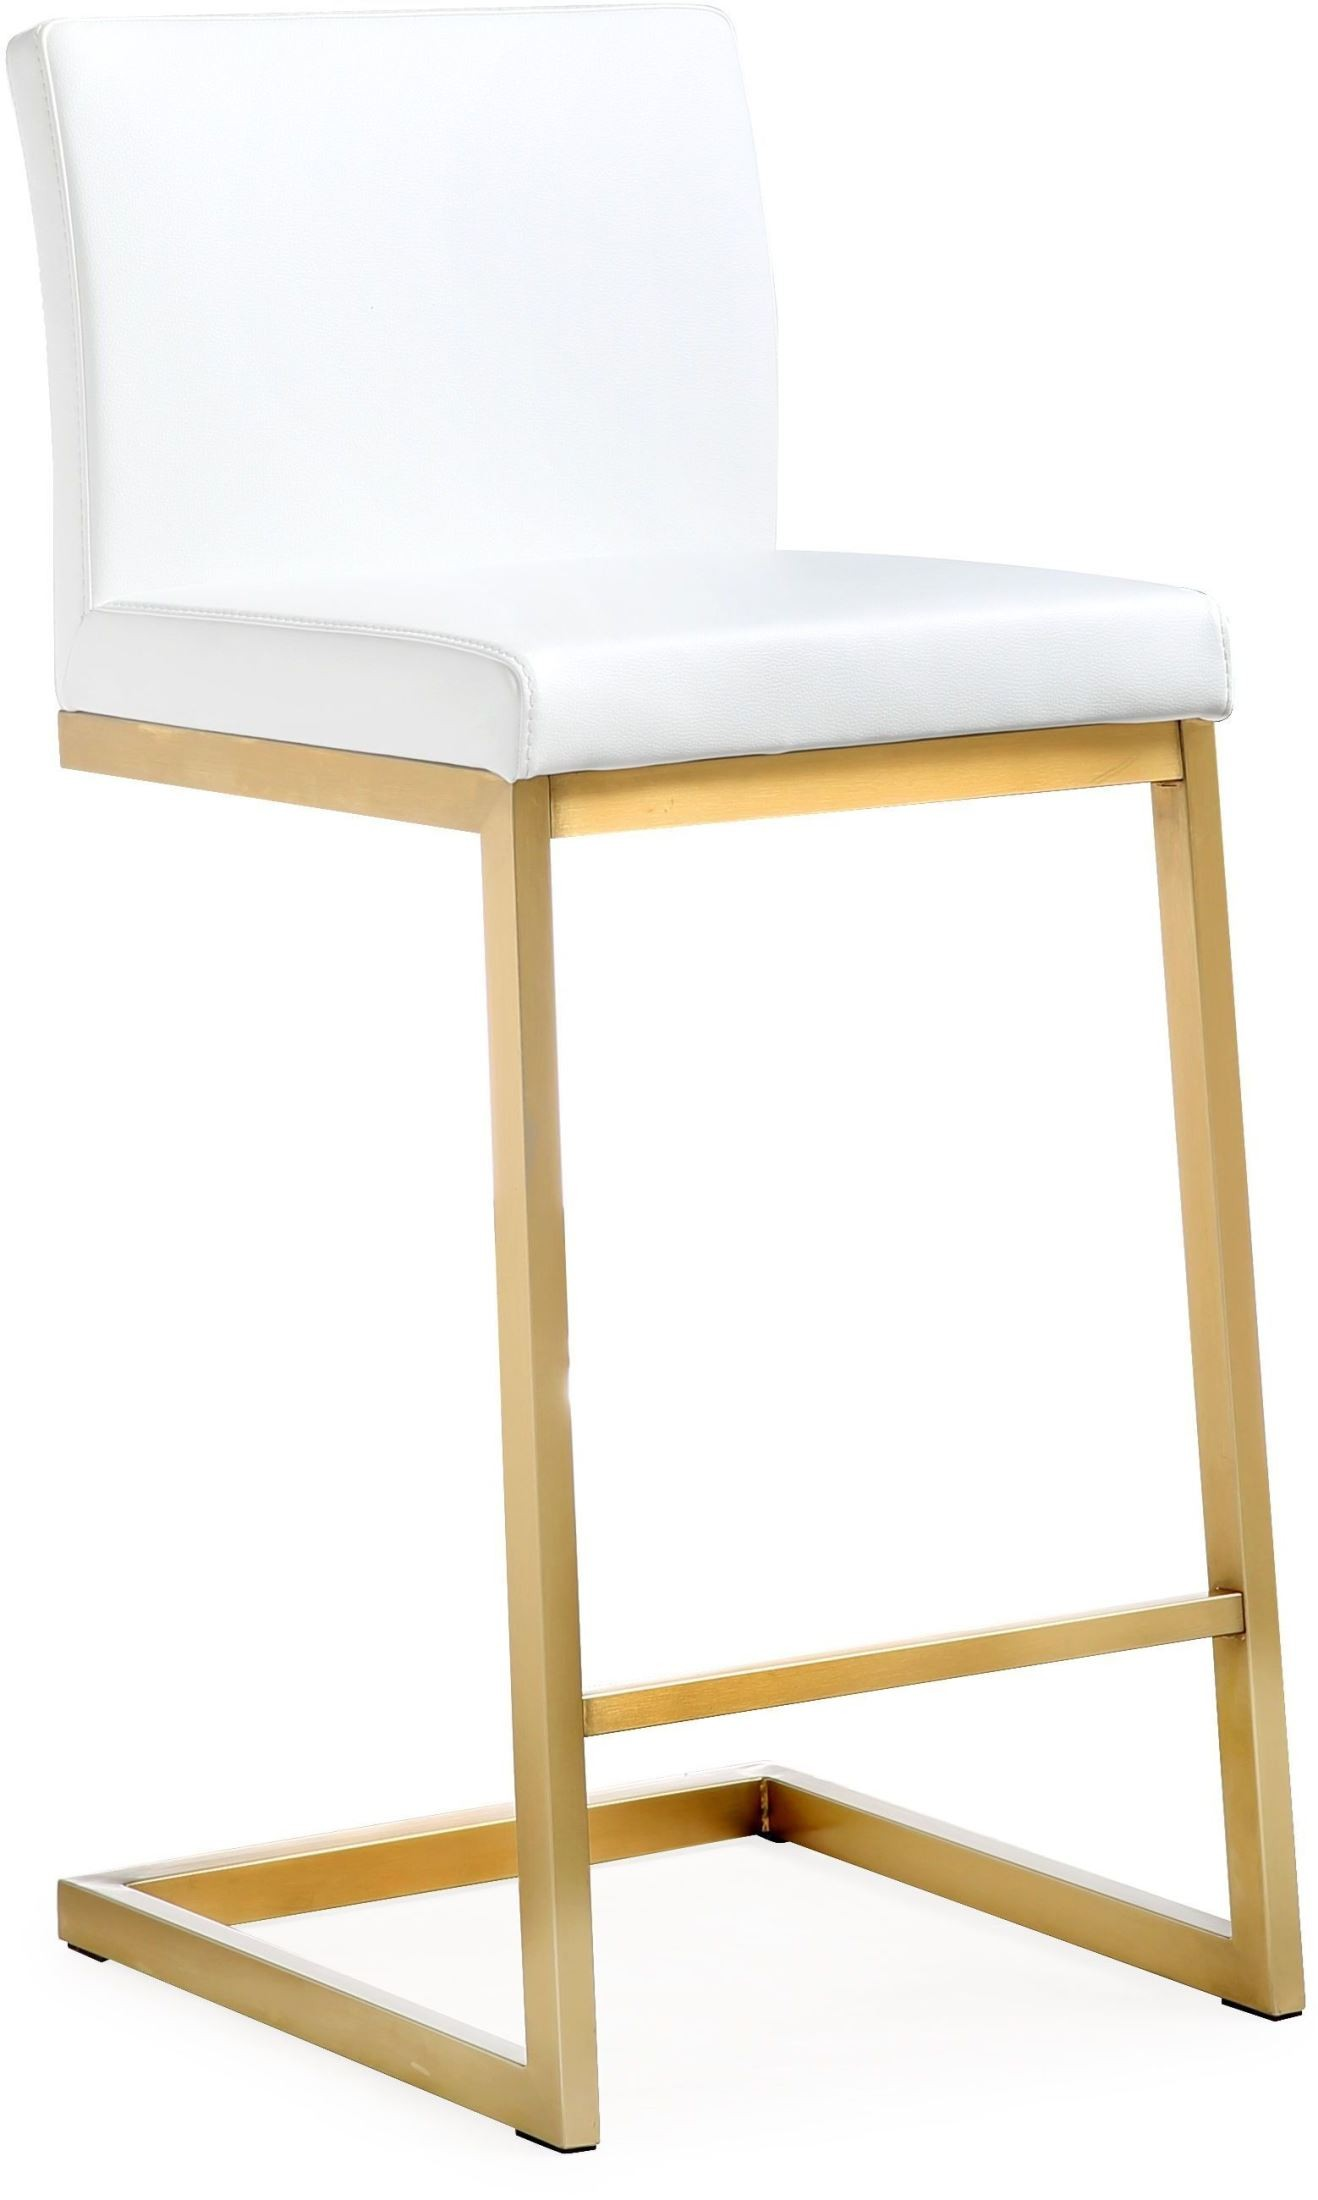 White And Gold Chair Parma White Gold Steel Counter Stool Set Of 2 From Tov